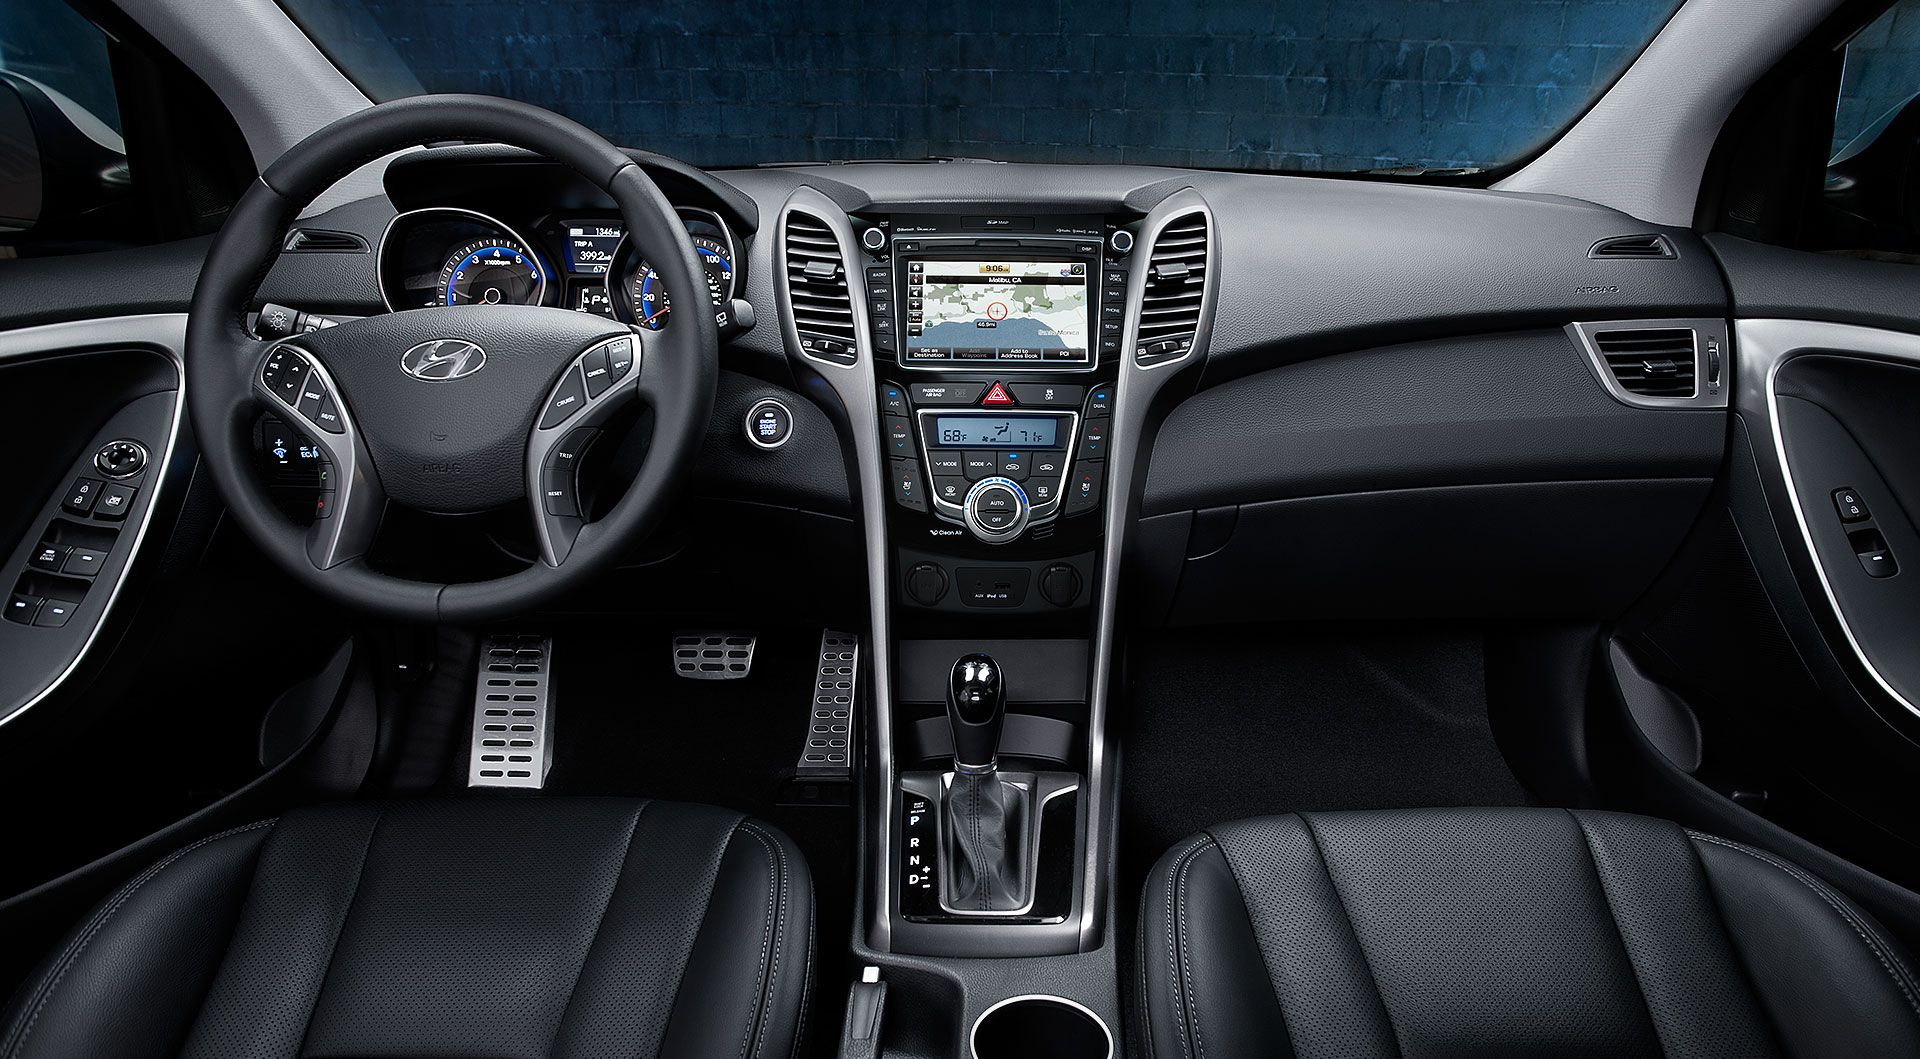 Elantra GT Interior Amenities